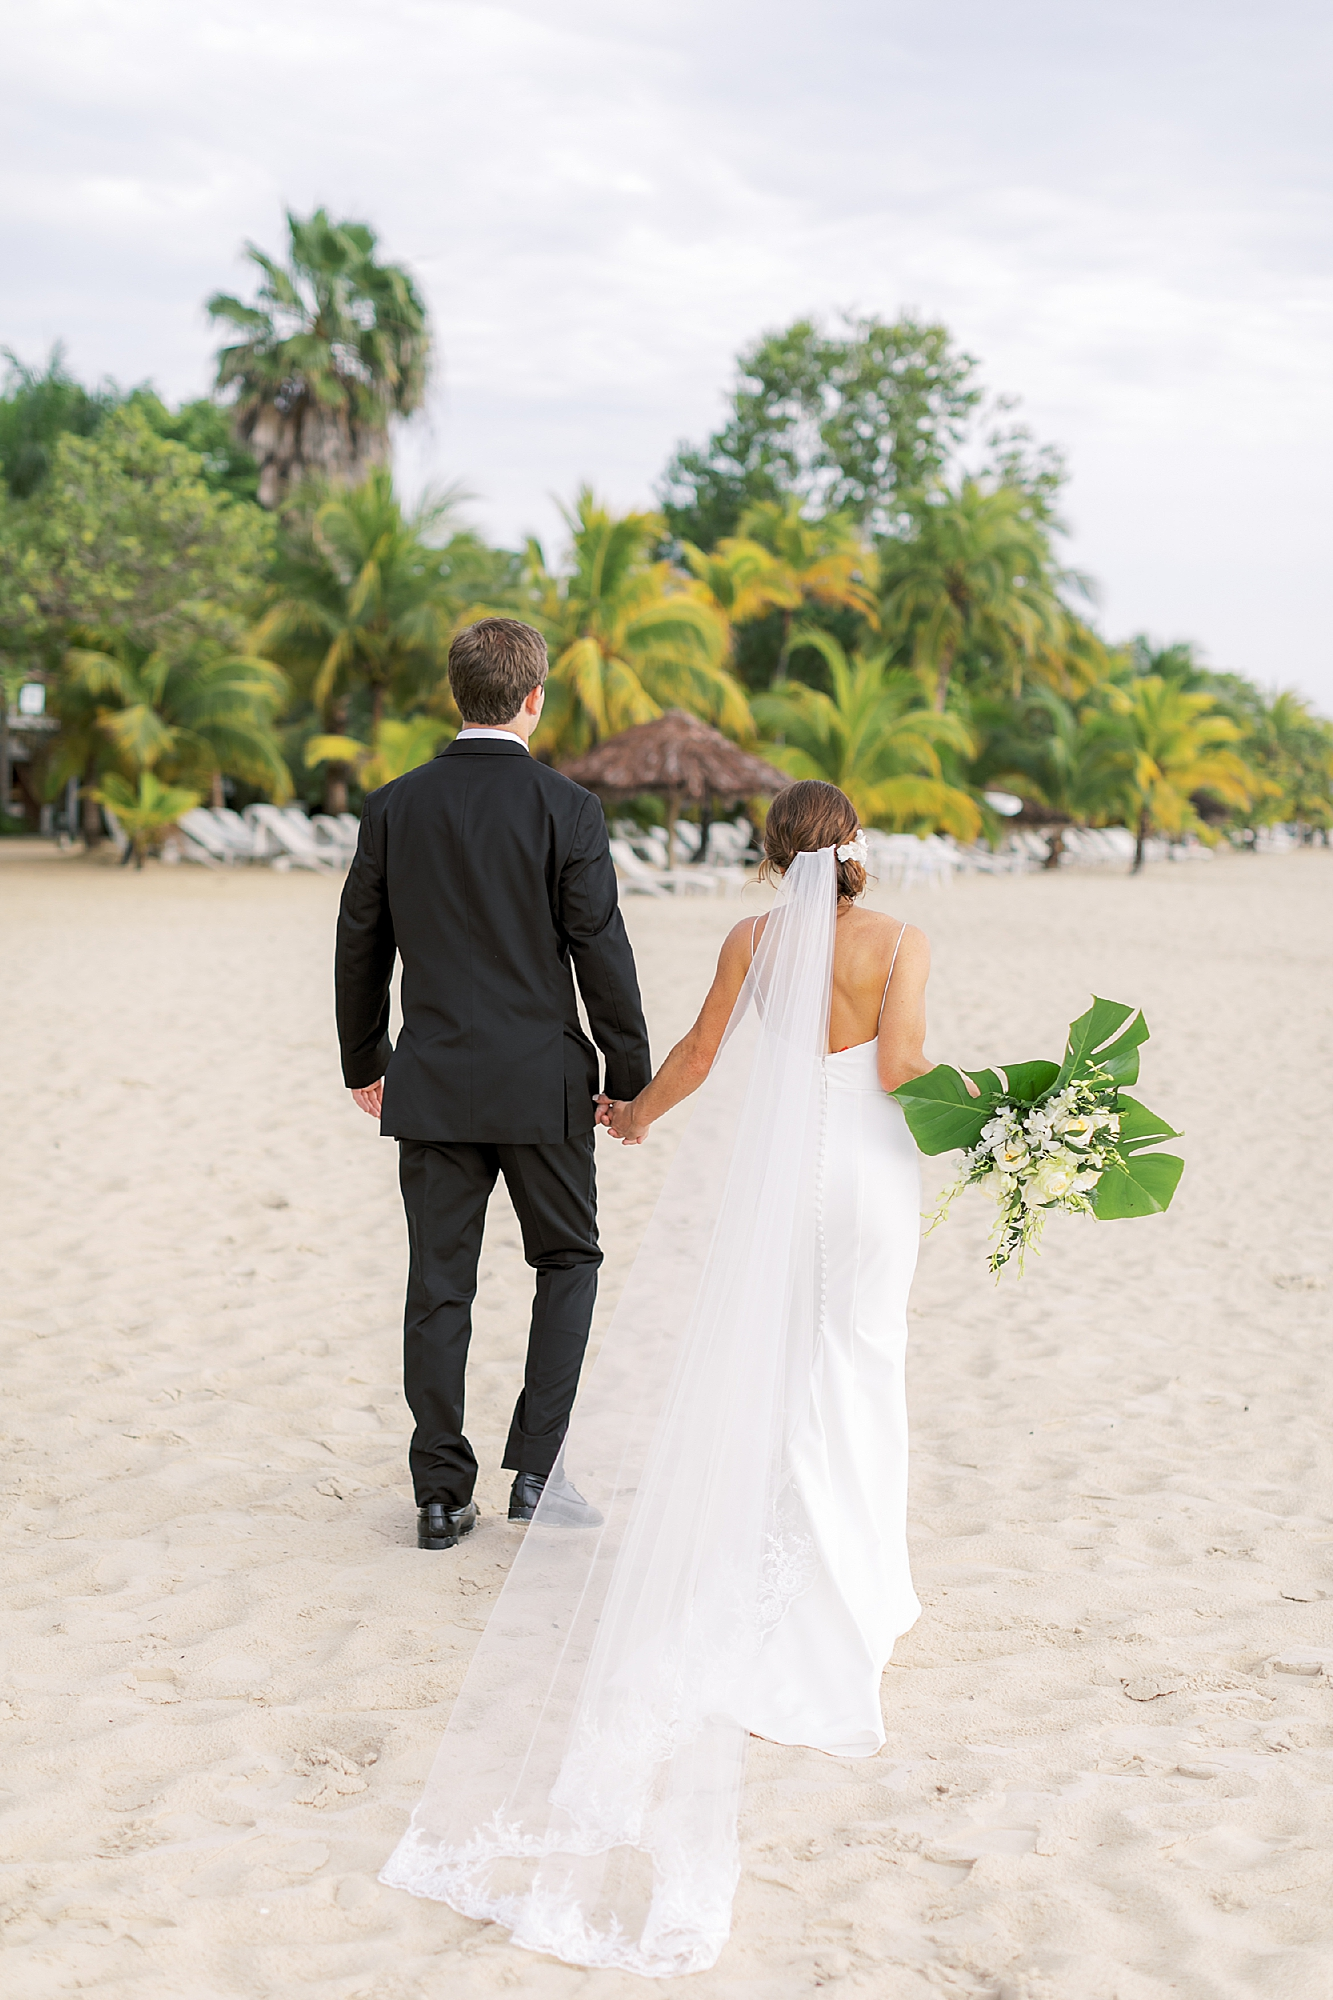 Negril Jamaica Film Destination Wedding Photography by Magdalena Studios 0048